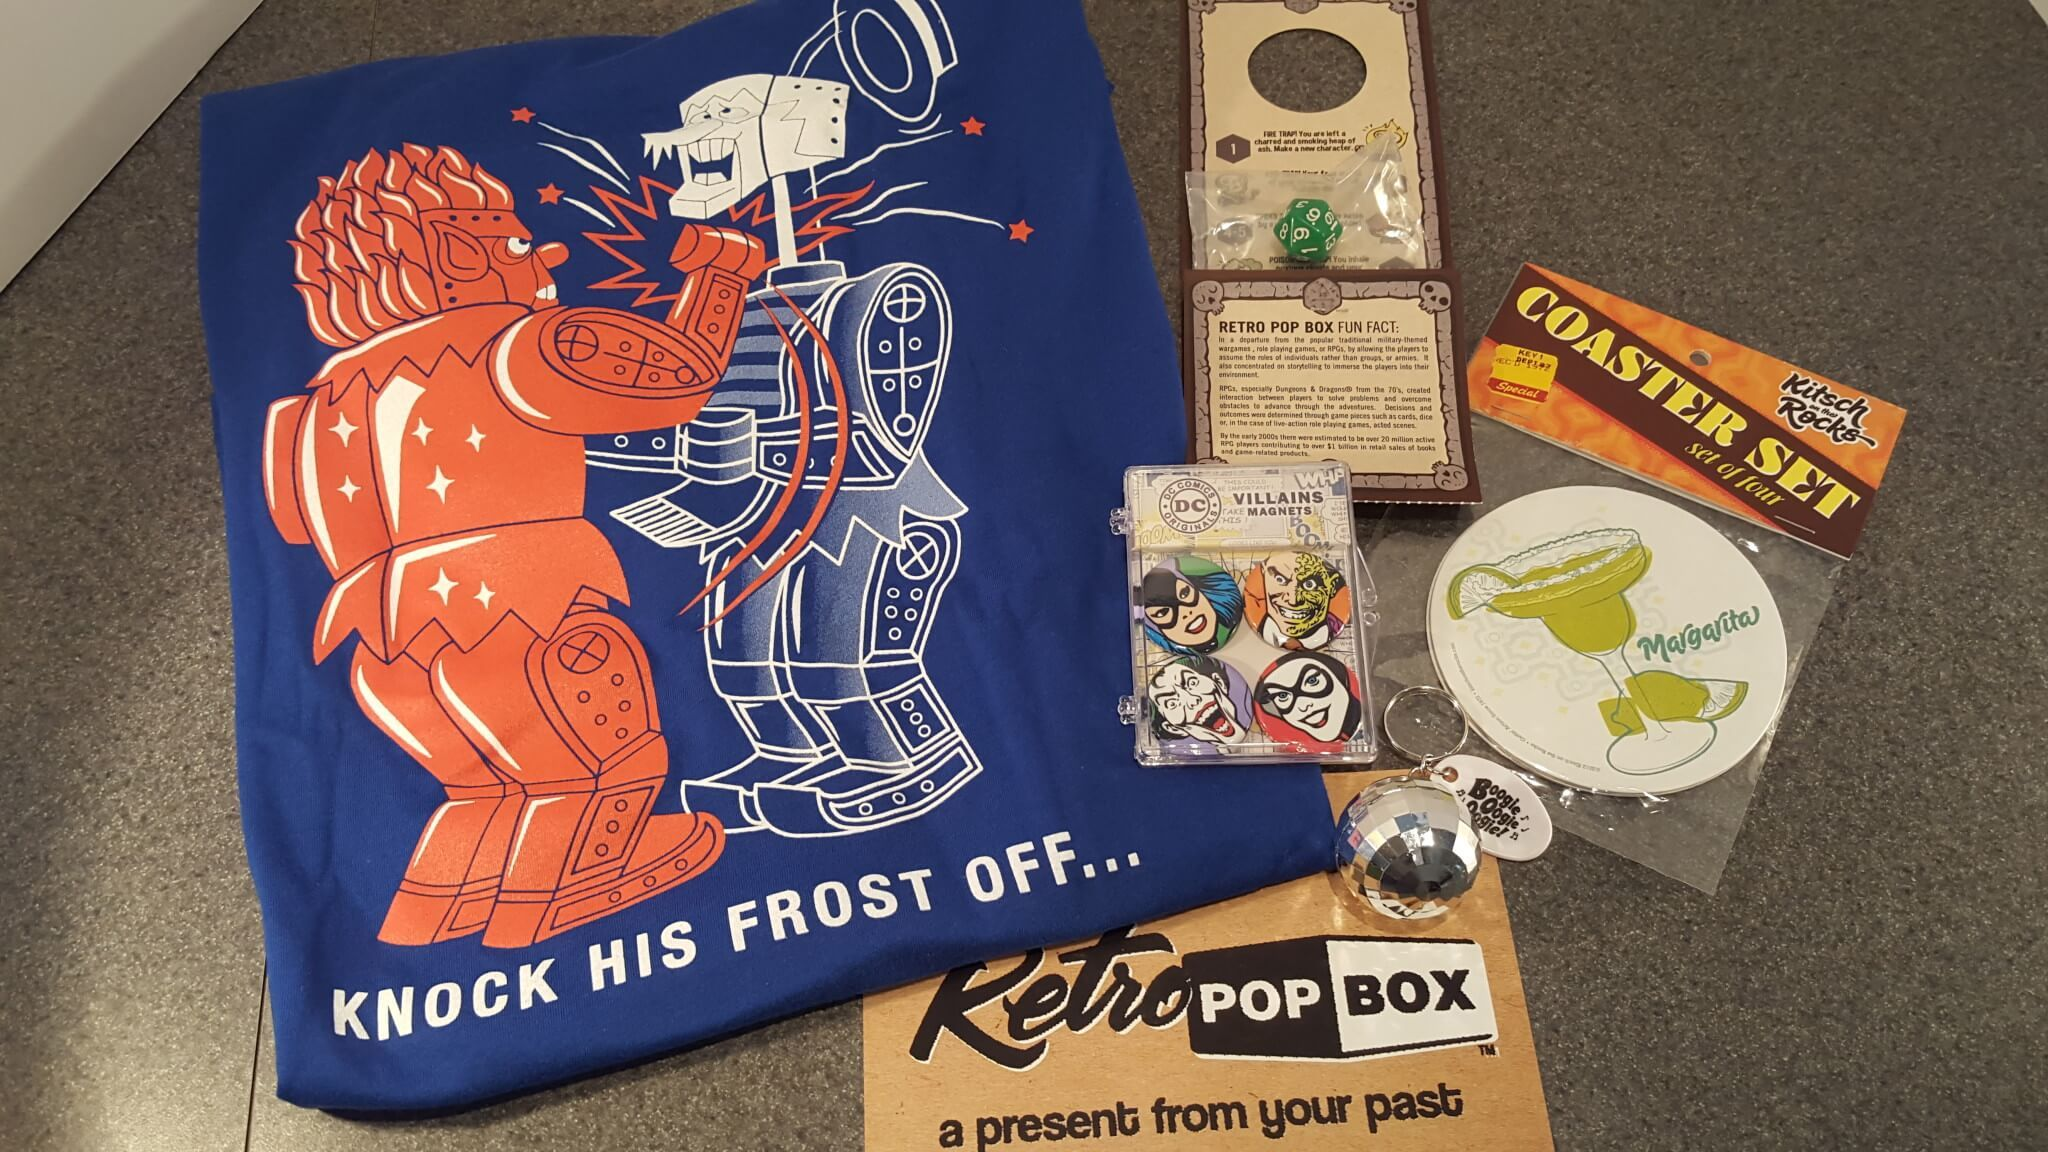 Retro Pop Box Subscription Box Review + Coupon - December 2015 70's Box #retropop